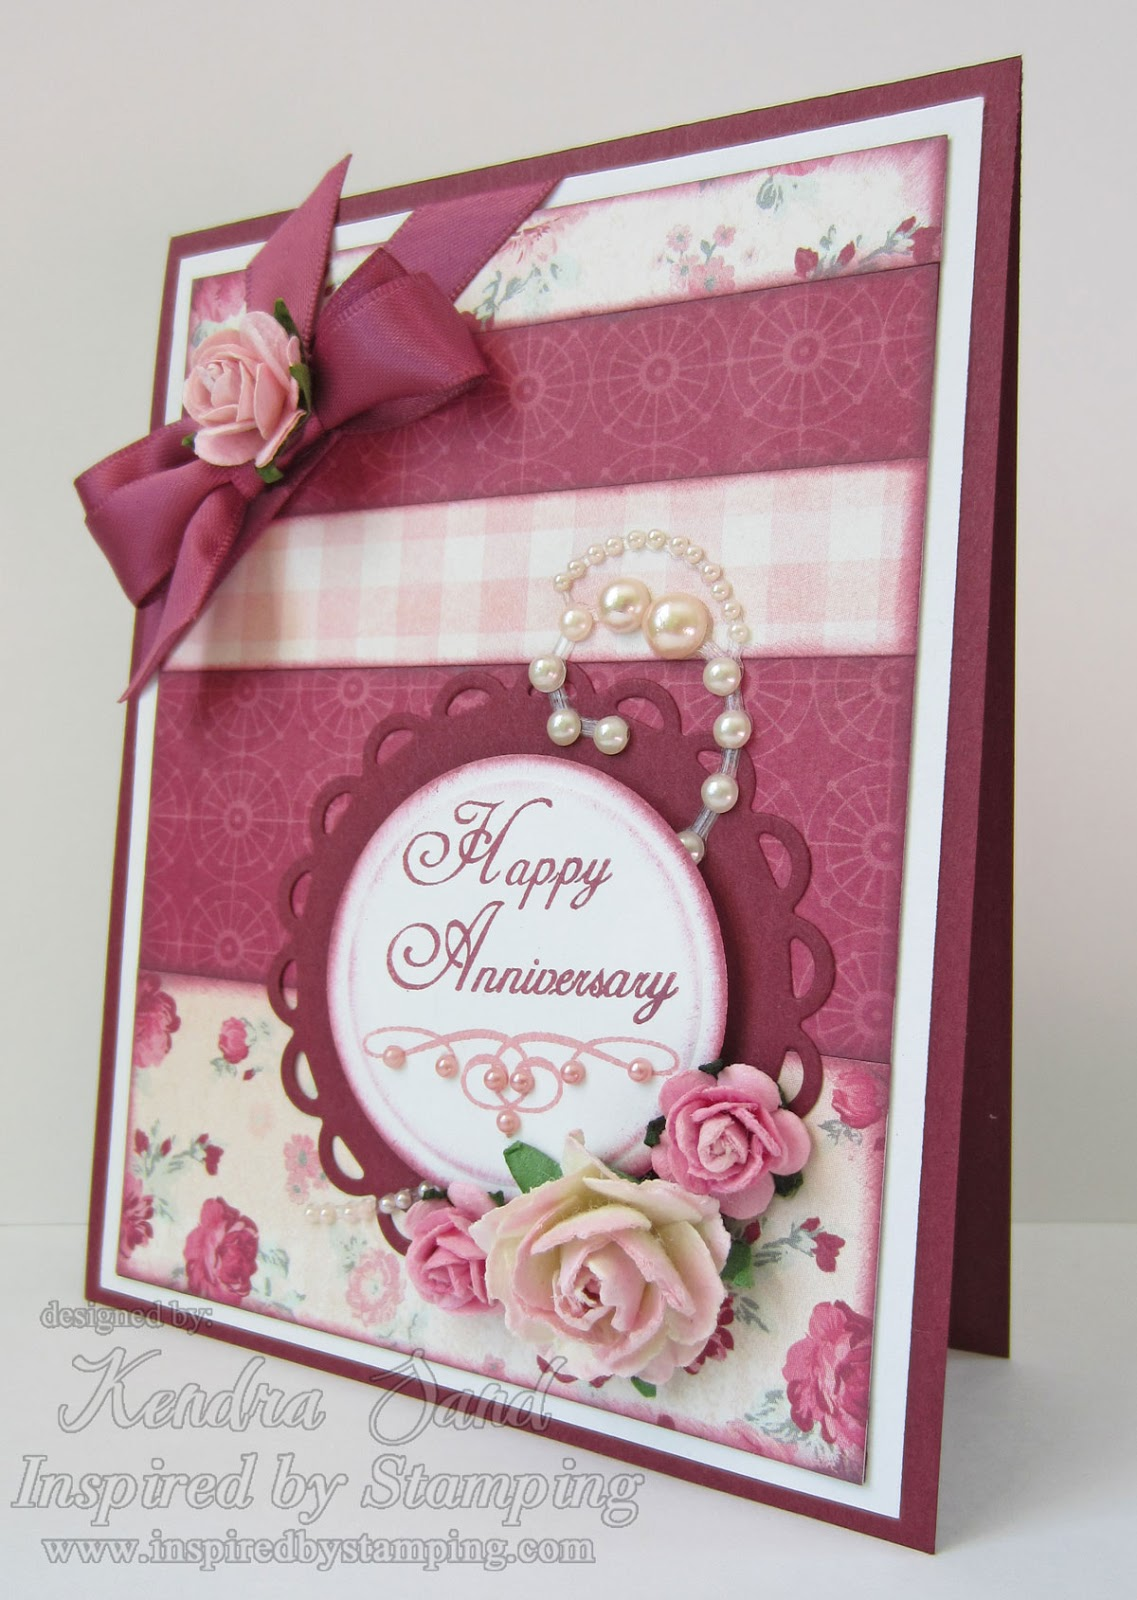 Luv 2 Scrap n\' Make Cards: IBS & Addicted to Stamps